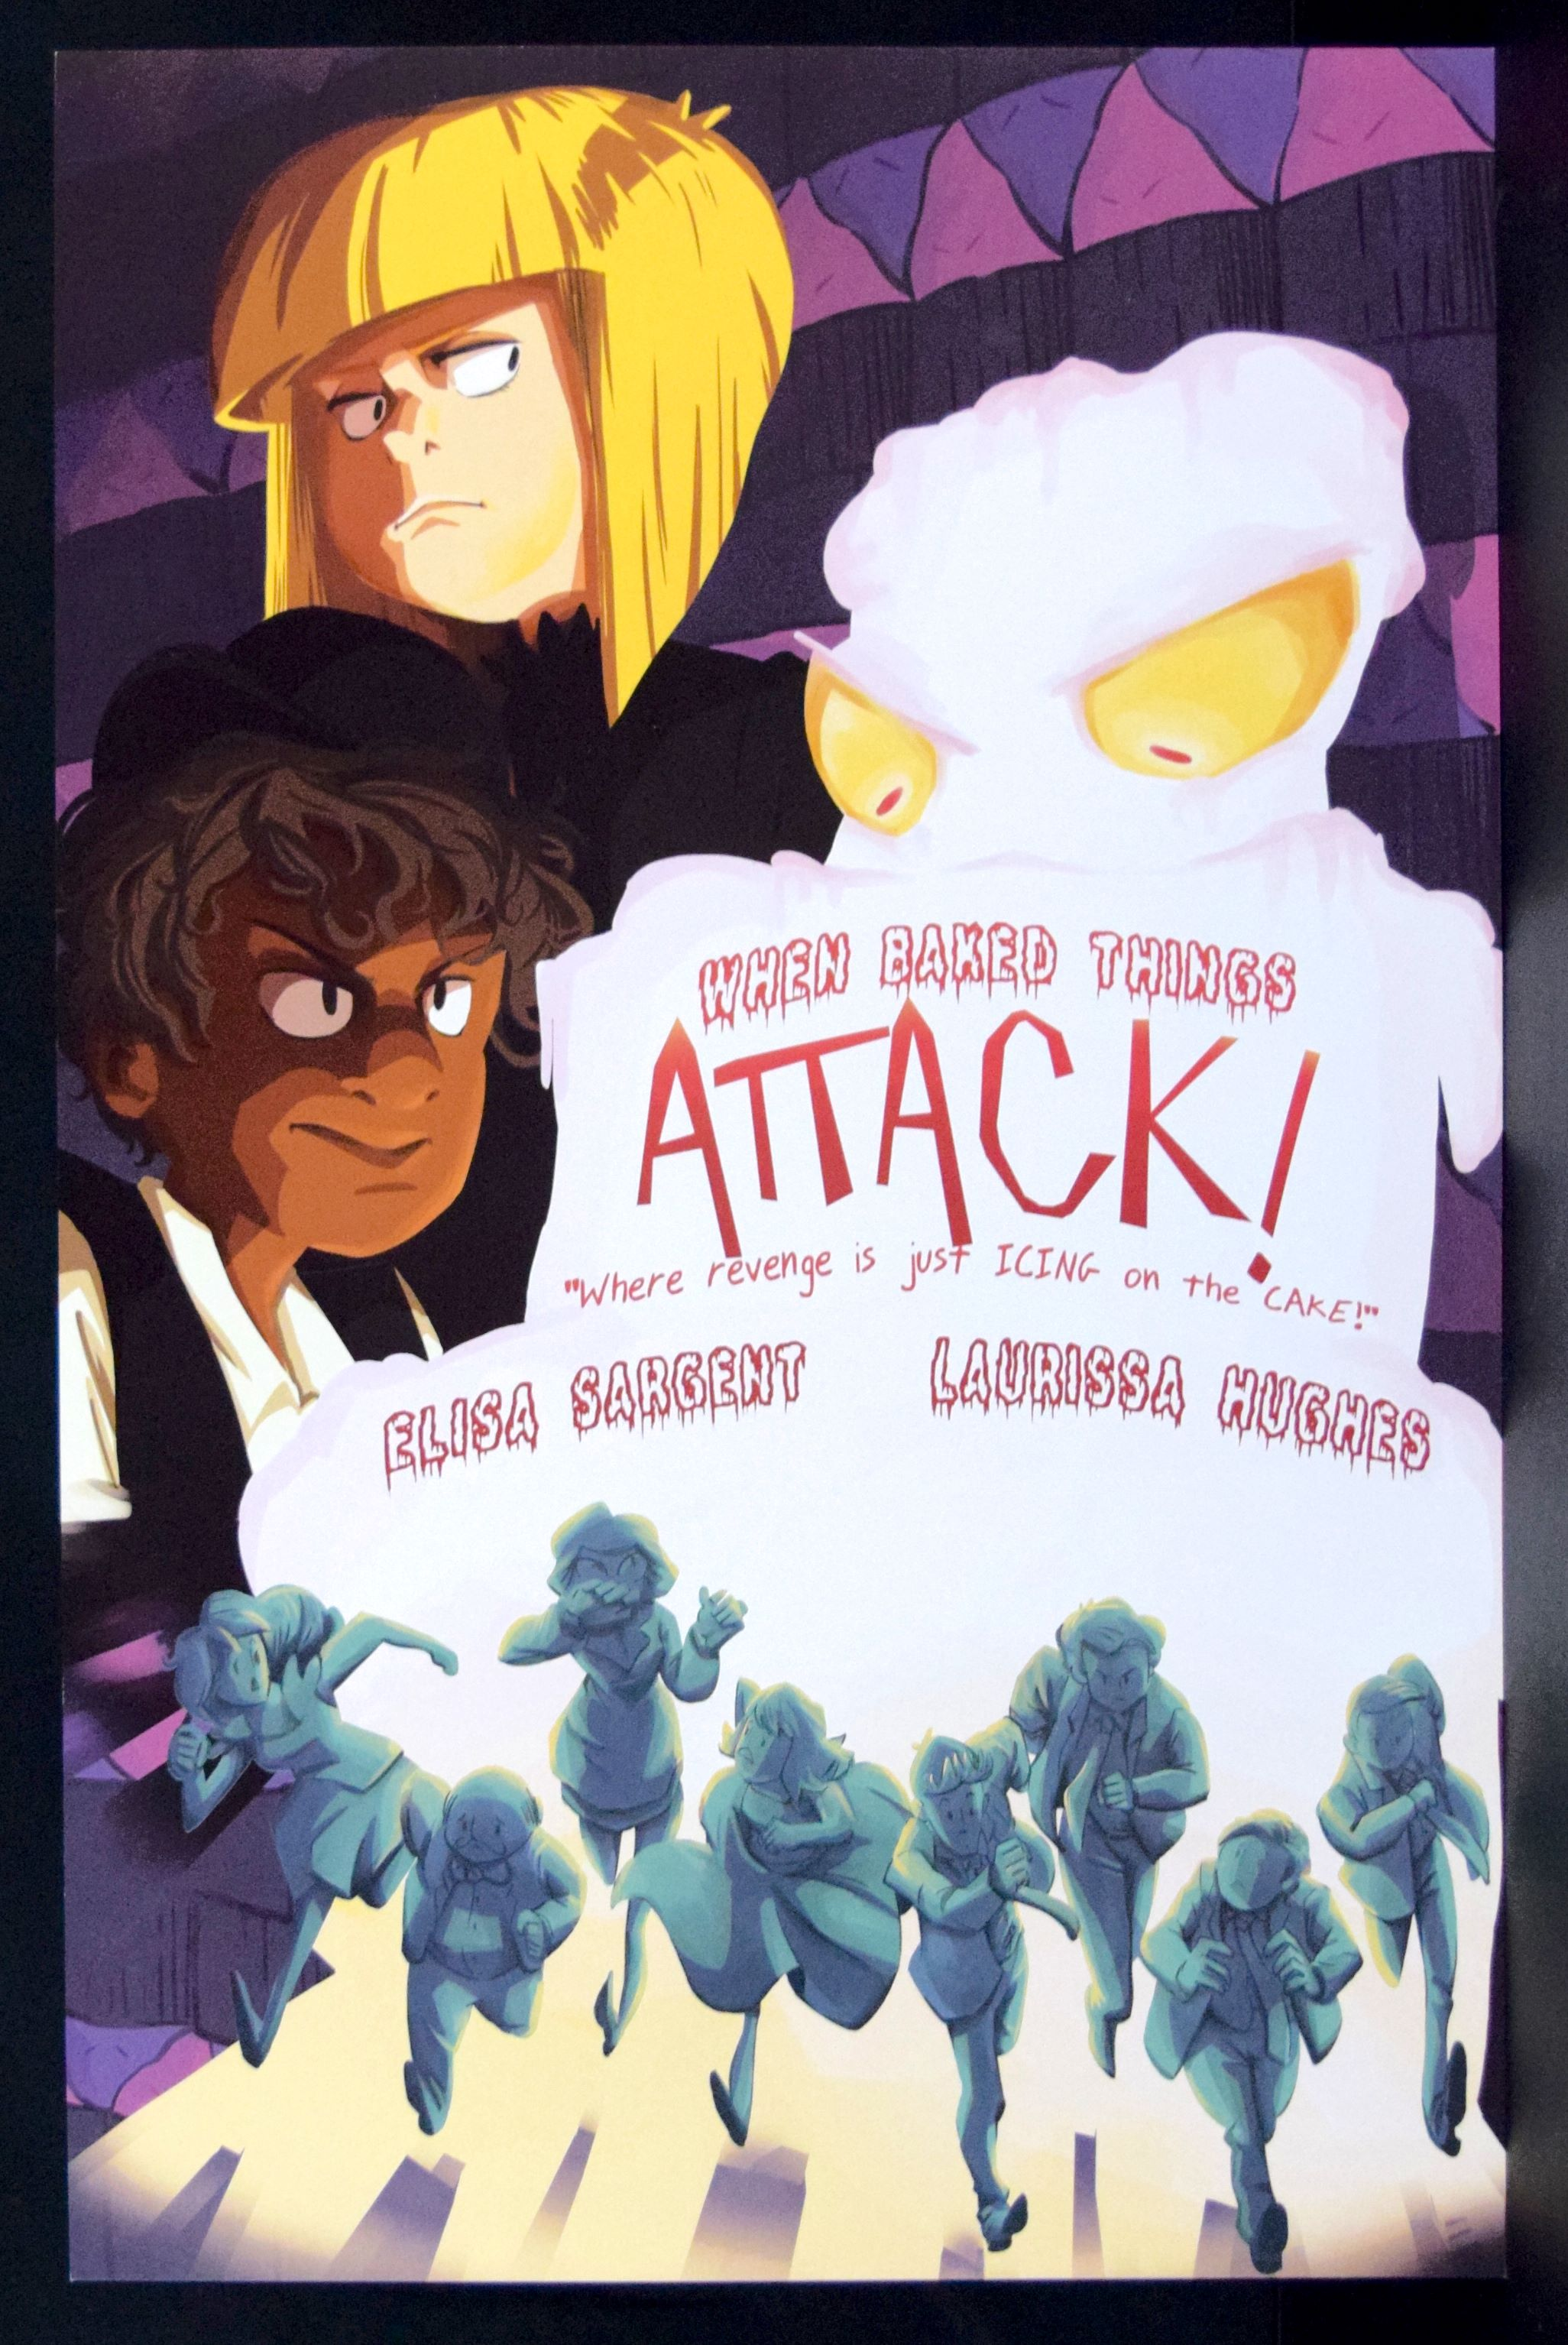 A  When Baked Things Attack!  promo poster from  Elisa Sargent  &  Laurissa Hughes .